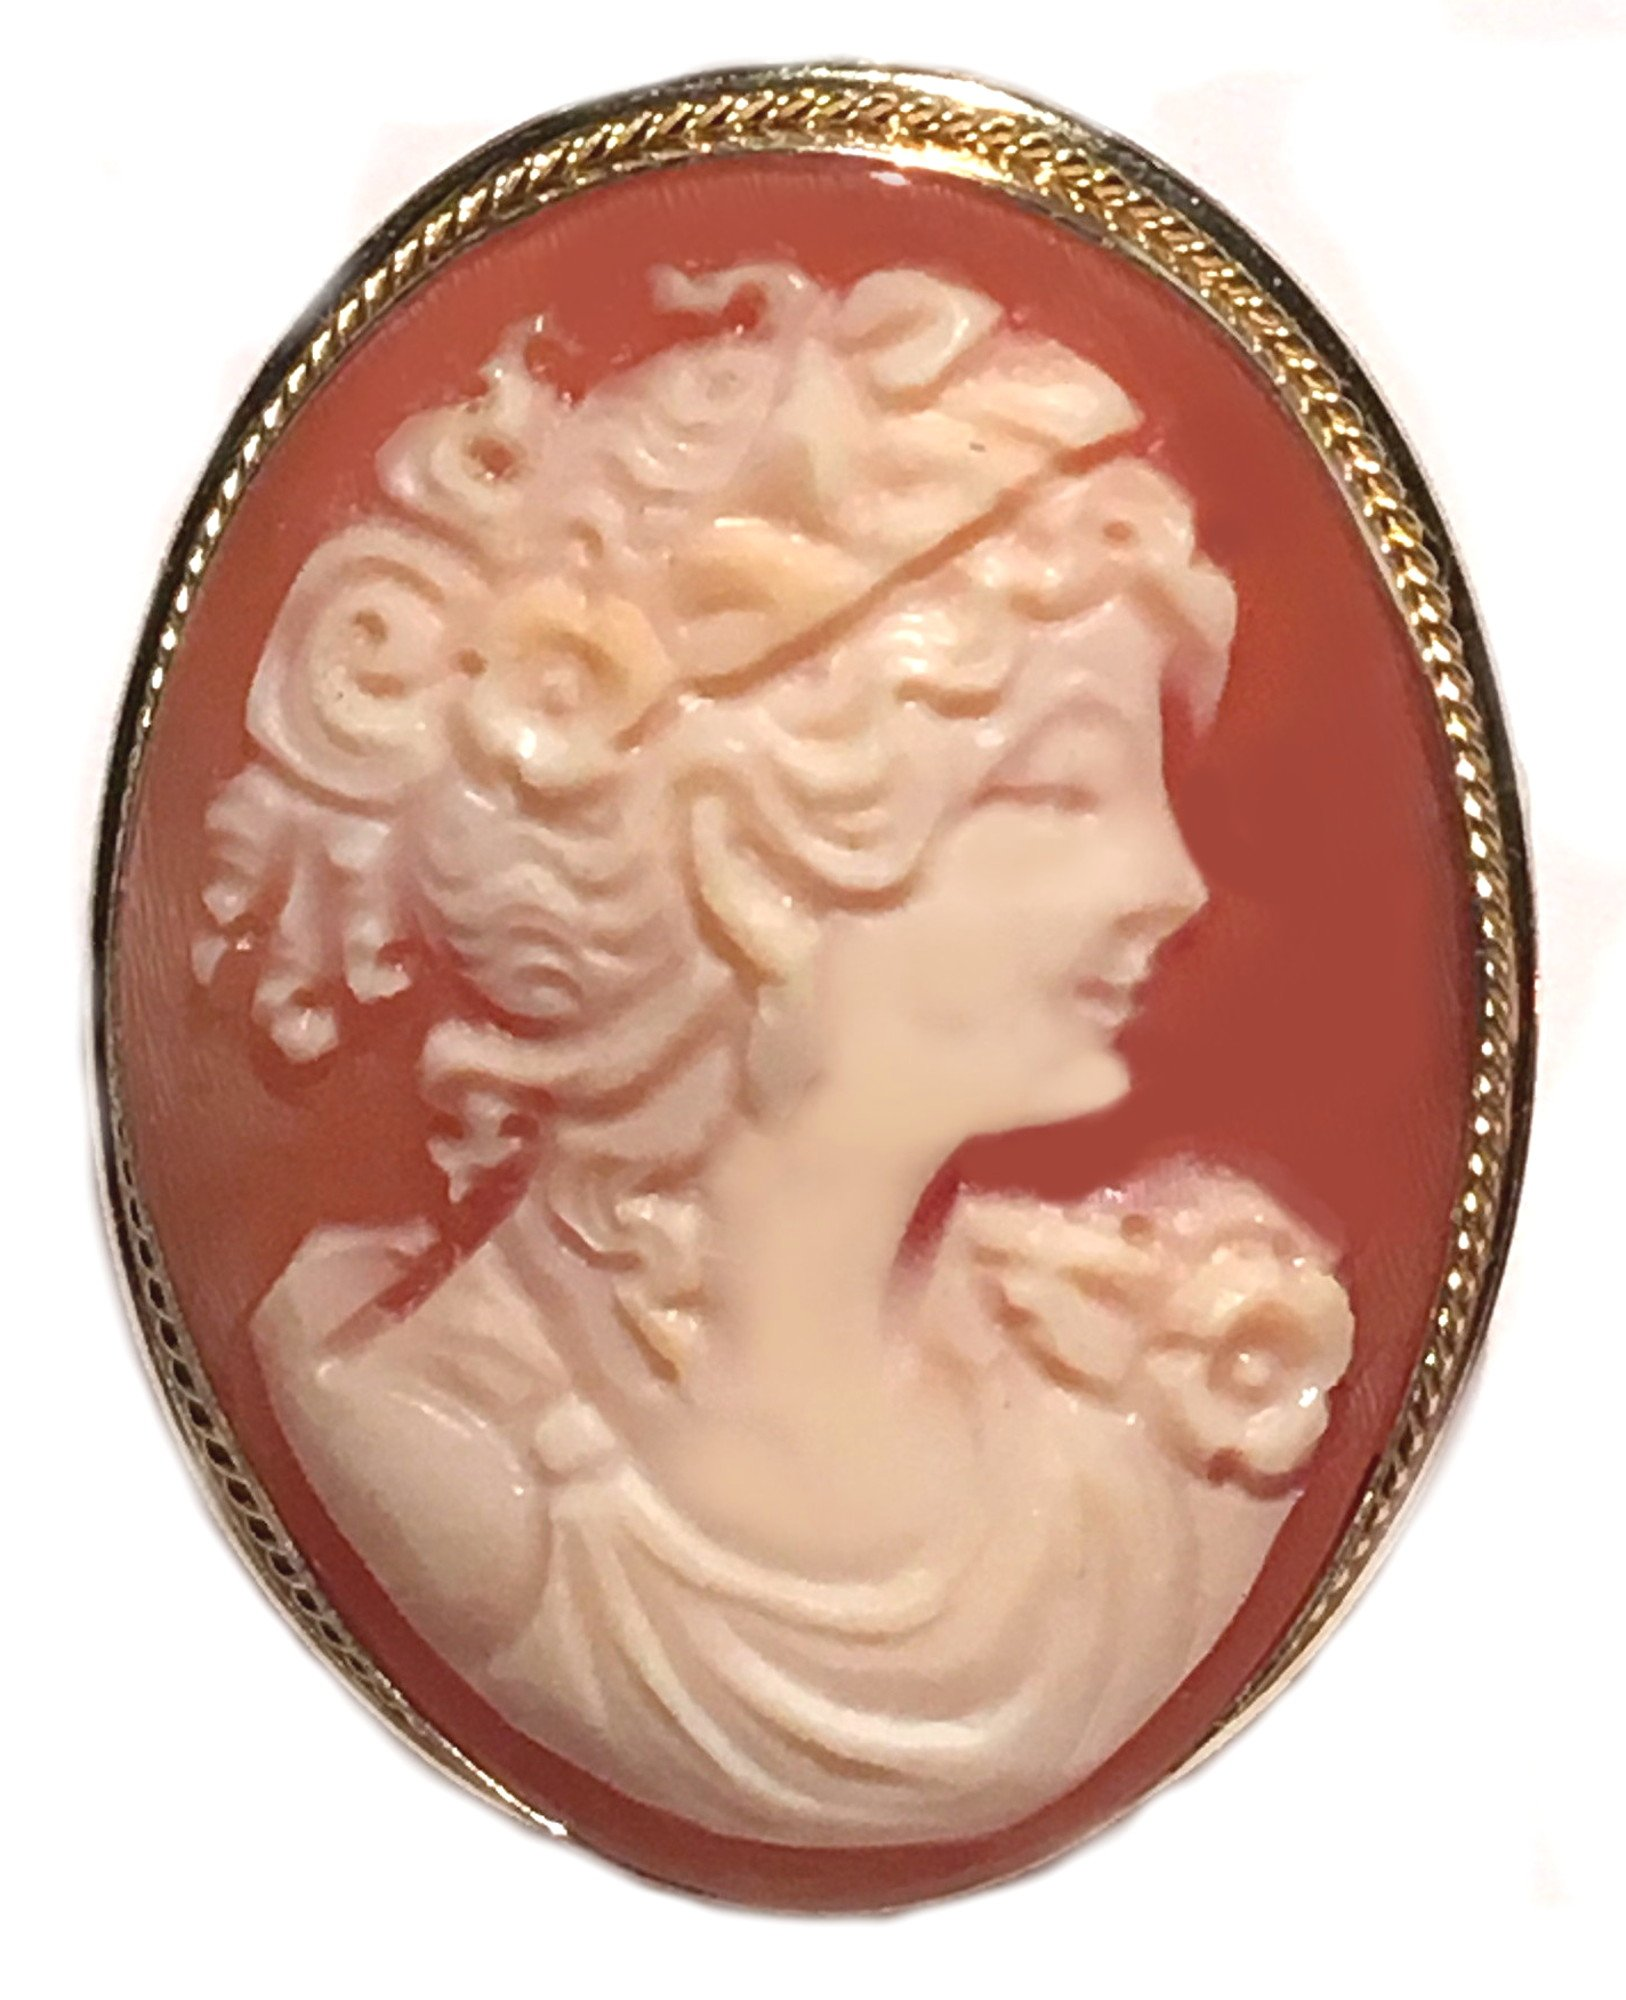 Cameo Brooch Pendant Enhancer, Master Carved, Shell Sterling Silver 18k Gold Overlay Italian Primavera by cameosRus (Image #1)